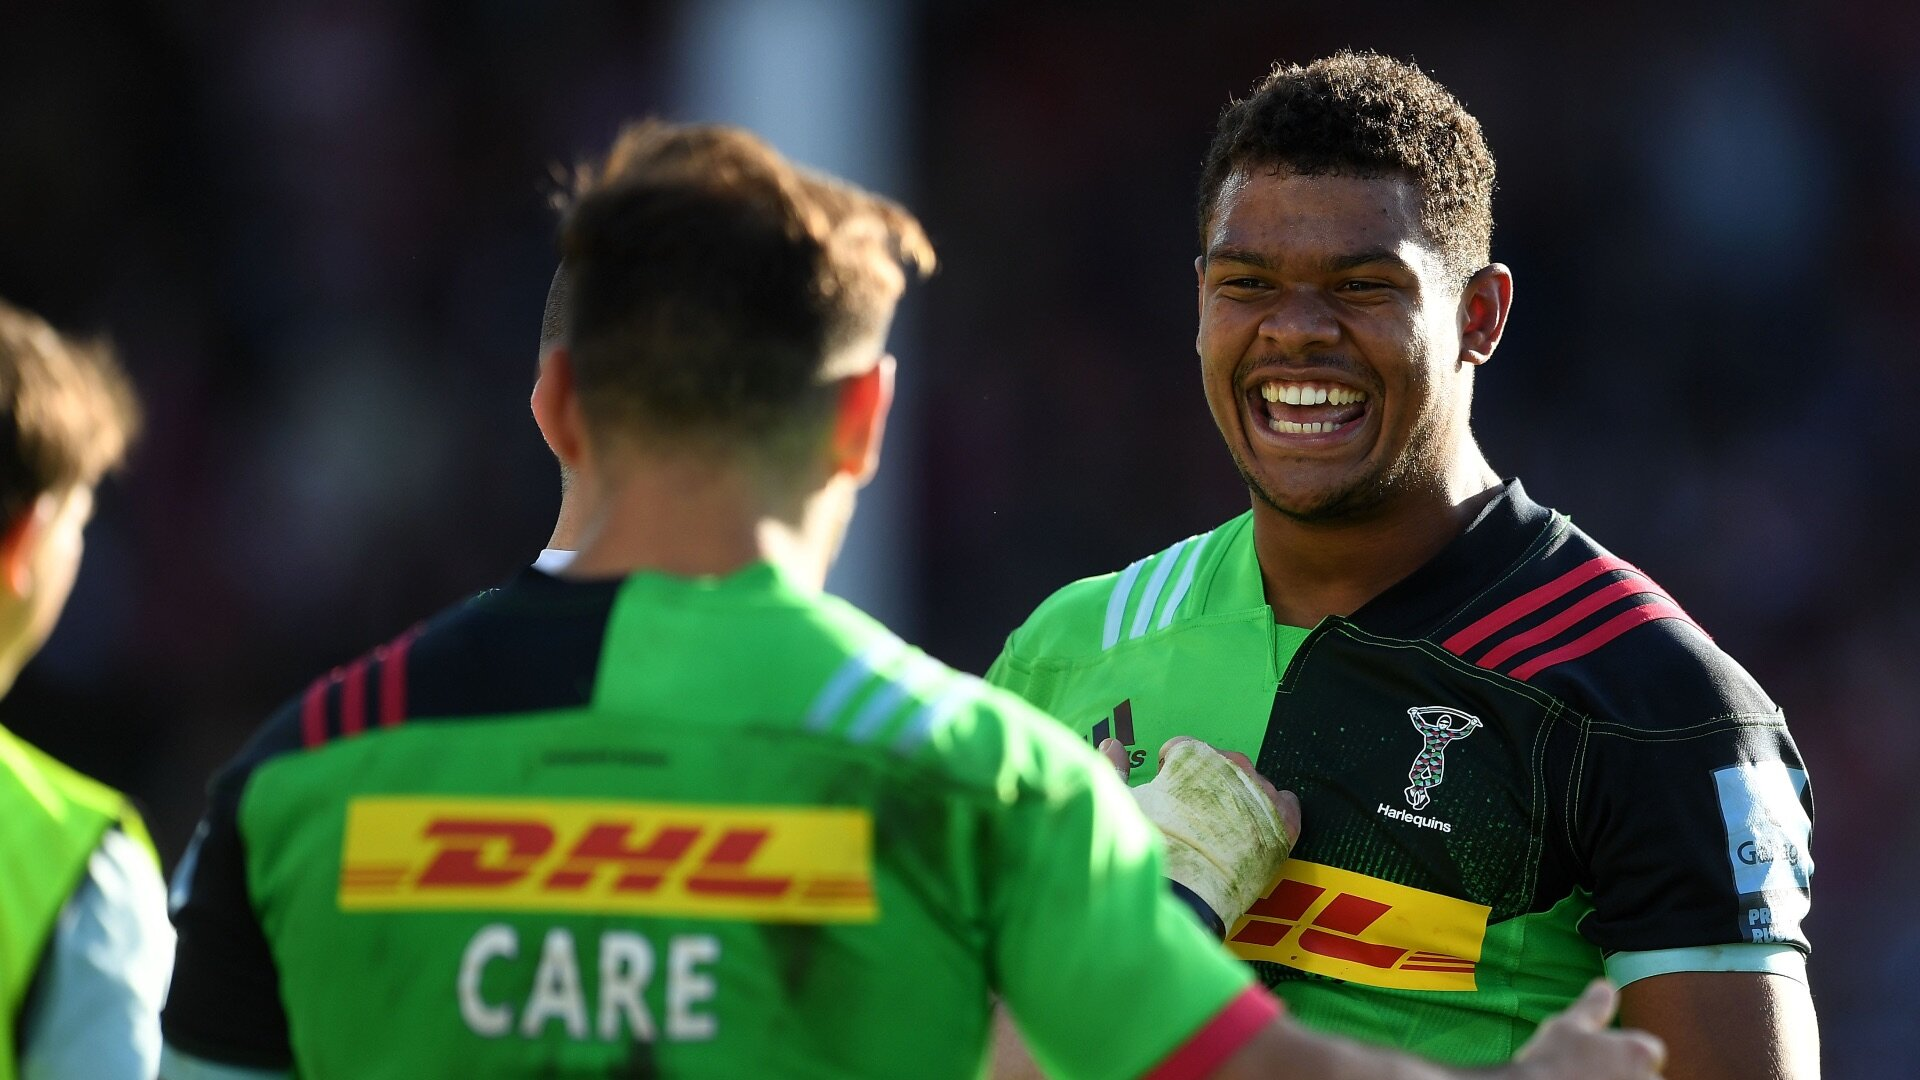 'When I was at Sarries I always felt on edge with the coaches, I never felt like I fully had their trust'